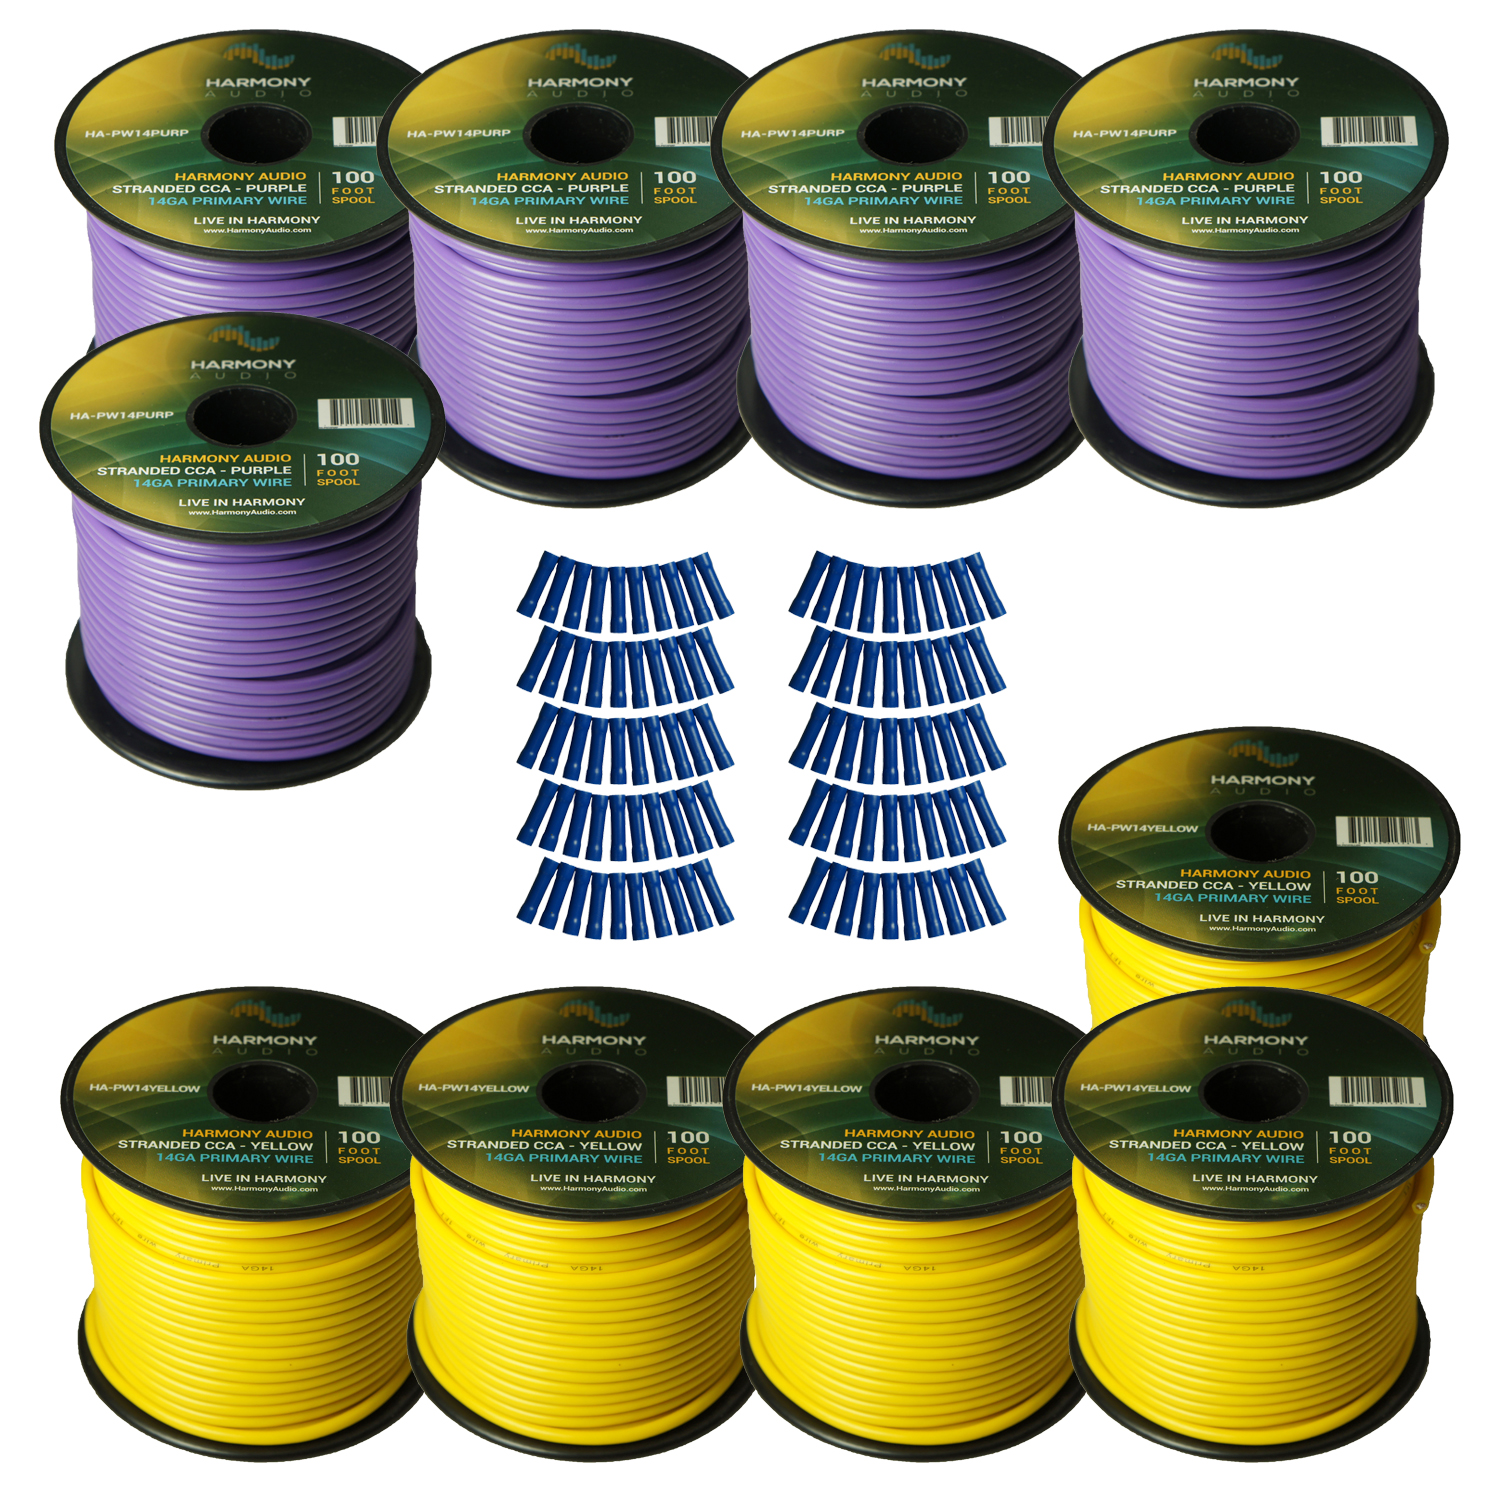 Harmony Audio Primary Single Conductor 14 Gauge Power or Ground Wire - 10 Rolls - 1000 Feet - Yellow & Purple for Car Audio / Trailer / Model Train / Remote